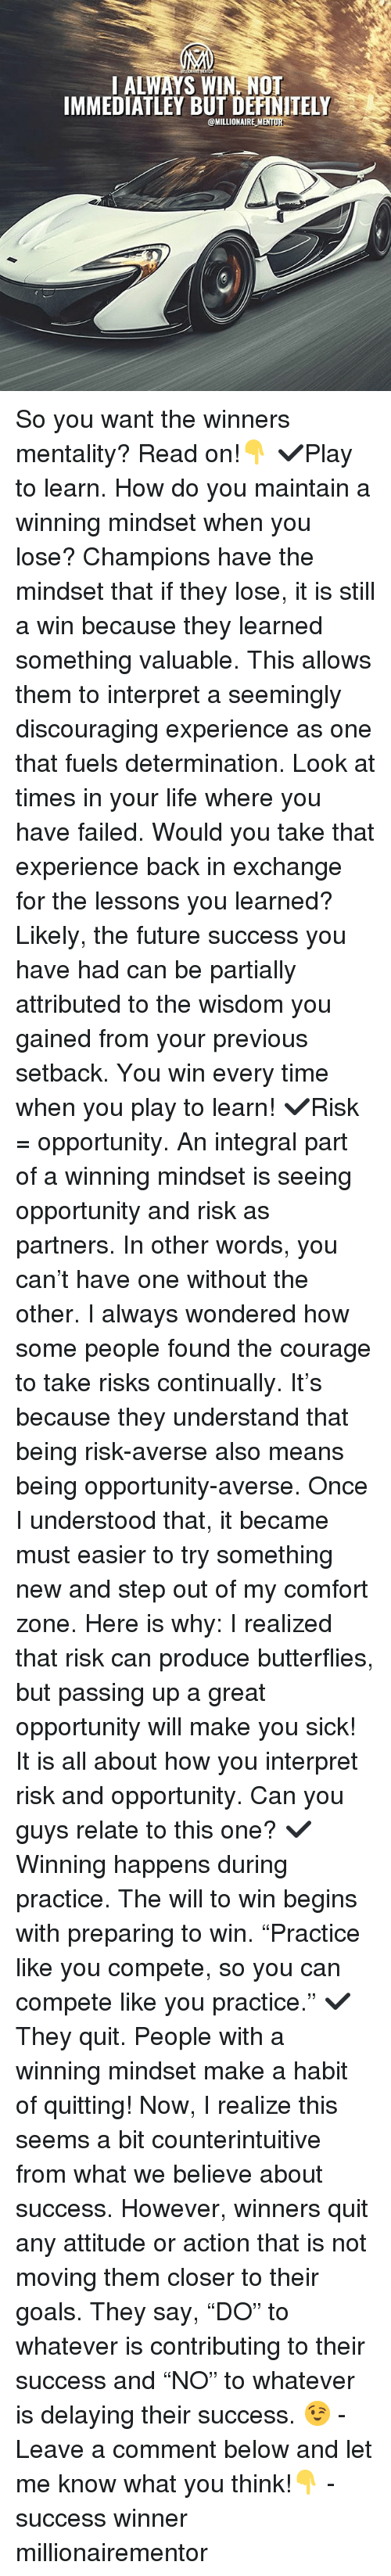 "Definitely, Future, and Goals: I ALWAYS WIN, NOT  IMMEDIATLEY BUT DEFINITELY  @MILLIONAIREMENT, So you want the winners mentality? Read on!👇 ✔️Play to learn. How do you maintain a winning mindset when you lose? Champions have the mindset that if they lose, it is still a win because they learned something valuable. This allows them to interpret a seemingly discouraging experience as one that fuels determination. Look at times in your life where you have failed. Would you take that experience back in exchange for the lessons you learned? Likely, the future success you have had can be partially attributed to the wisdom you gained from your previous setback. You win every time when you play to learn! ✔️Risk = opportunity. An integral part of a winning mindset is seeing opportunity and risk as partners. In other words, you can't have one without the other. I always wondered how some people found the courage to take risks continually. It's because they understand that being risk-averse also means being opportunity-averse. Once I understood that, it became must easier to try something new and step out of my comfort zone. Here is why: I realized that risk can produce butterflies, but passing up a great opportunity will make you sick! It is all about how you interpret risk and opportunity. Can you guys relate to this one? ✔️Winning happens during practice. The will to win begins with preparing to win. ""Practice like you compete, so you can compete like you practice."" ✔️They quit. People with a winning mindset make a habit of quitting! Now, I realize this seems a bit counterintuitive from what we believe about success. However, winners quit any attitude or action that is not moving them closer to their goals. They say, ""DO"" to whatever is contributing to their success and ""NO"" to whatever is delaying their success. 😉 - Leave a comment below and let me know what you think!👇 - success winner millionairementor"